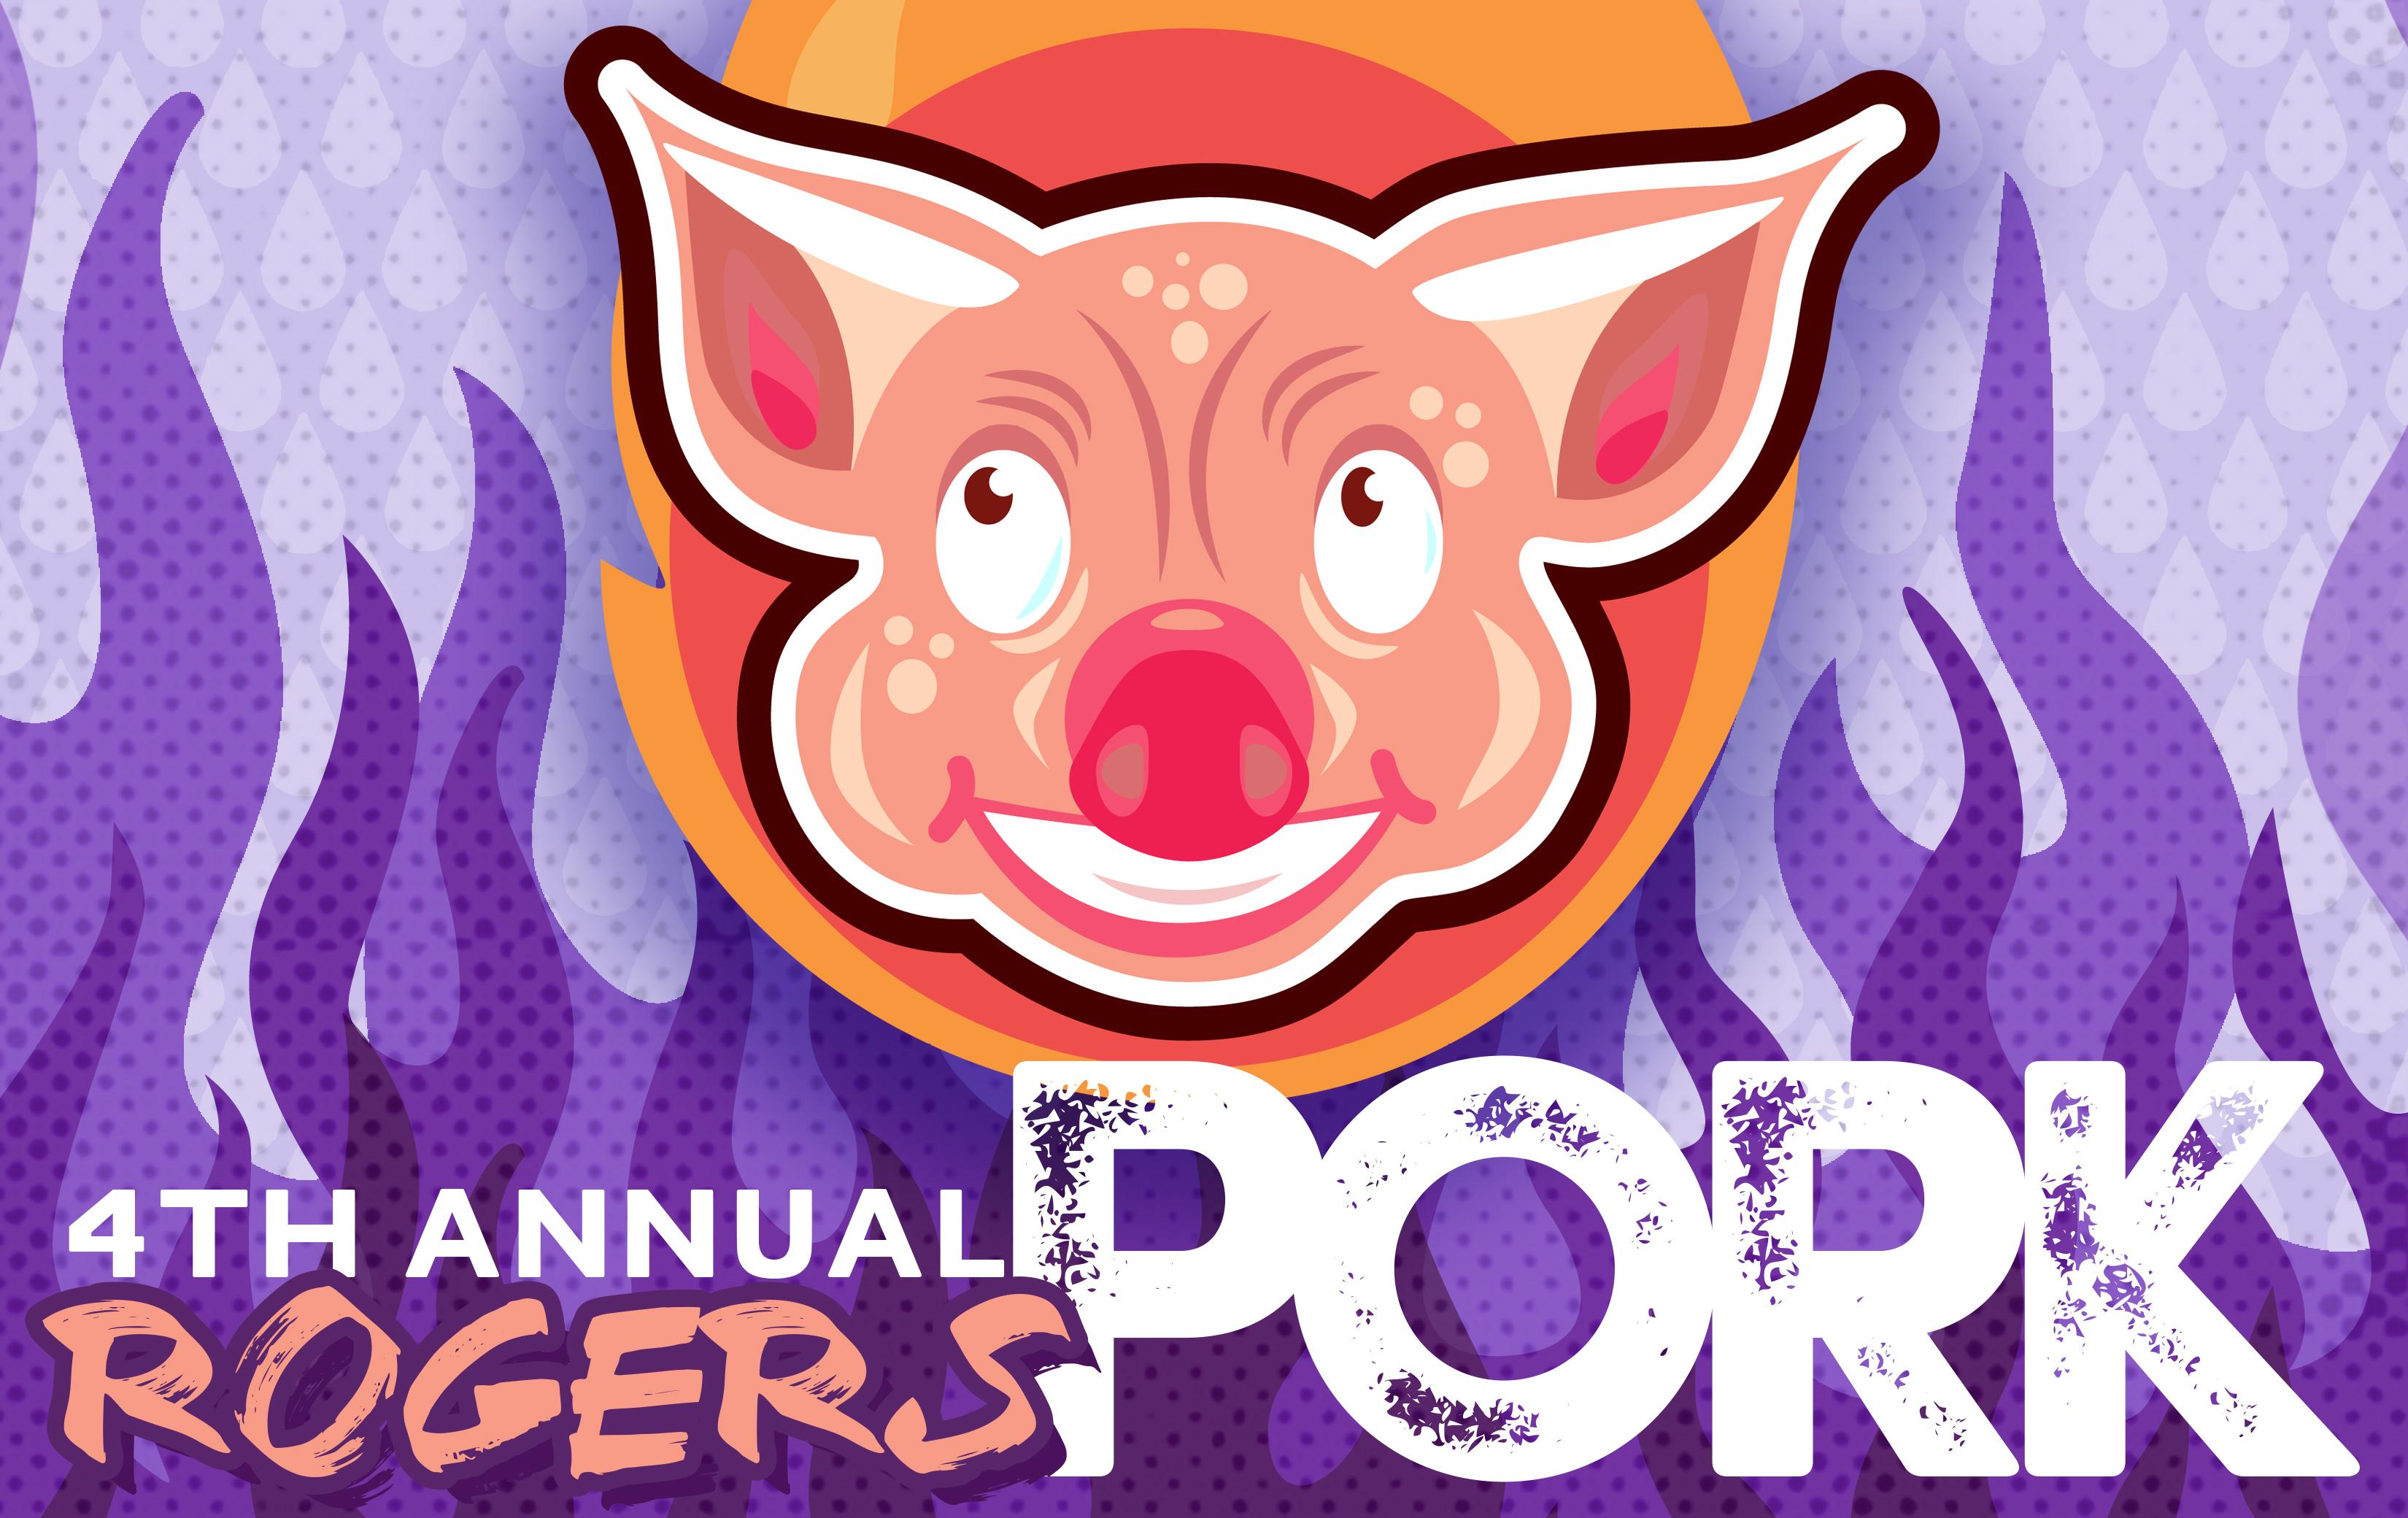 Pig out in Rogers Park (aka Rogers Pork) this weekend.